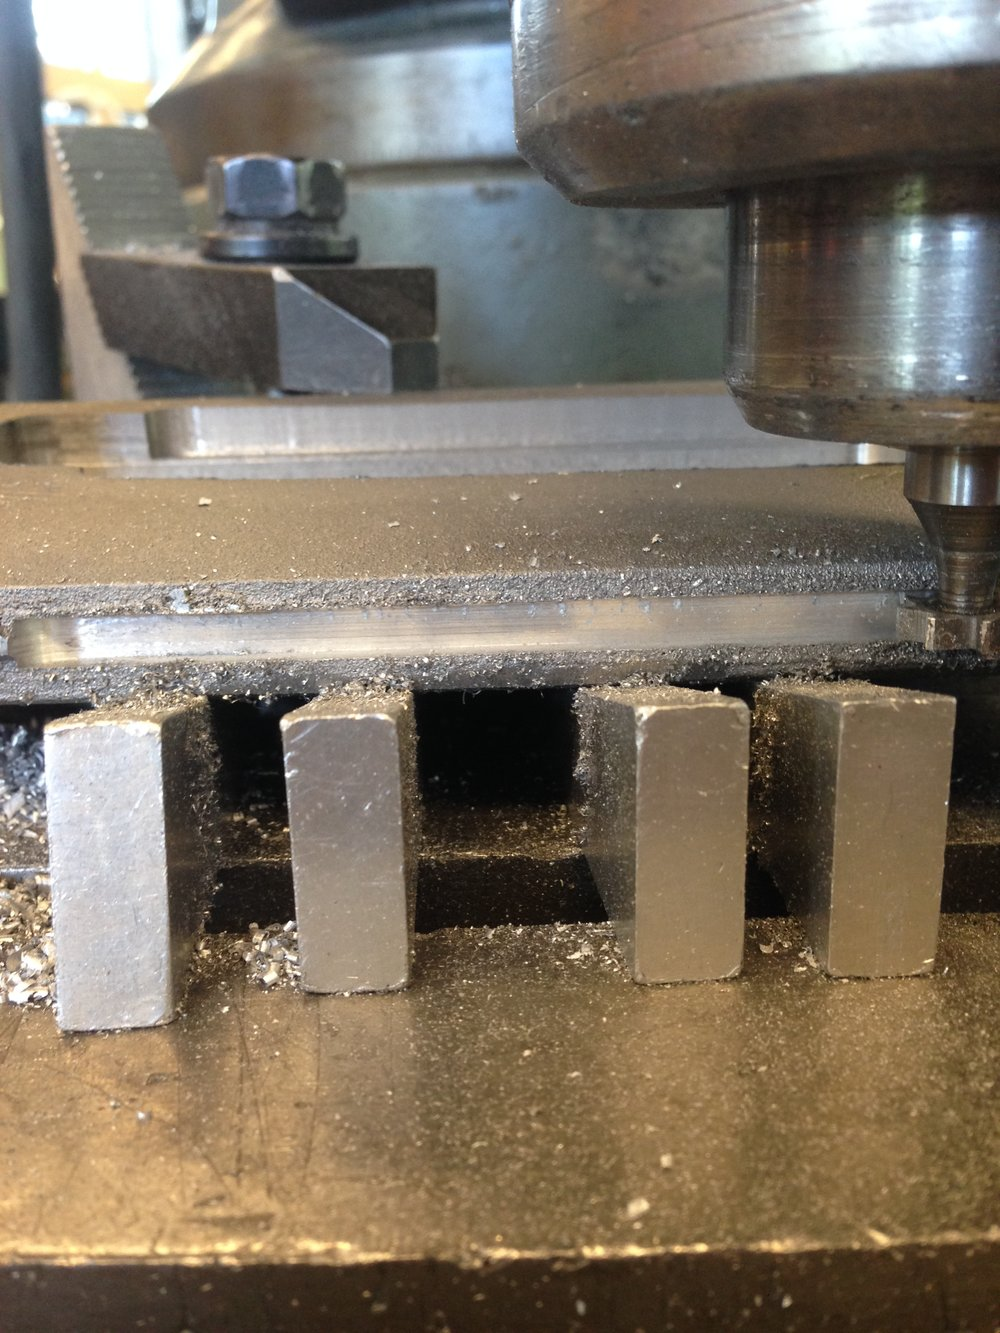 Machining the light recession.